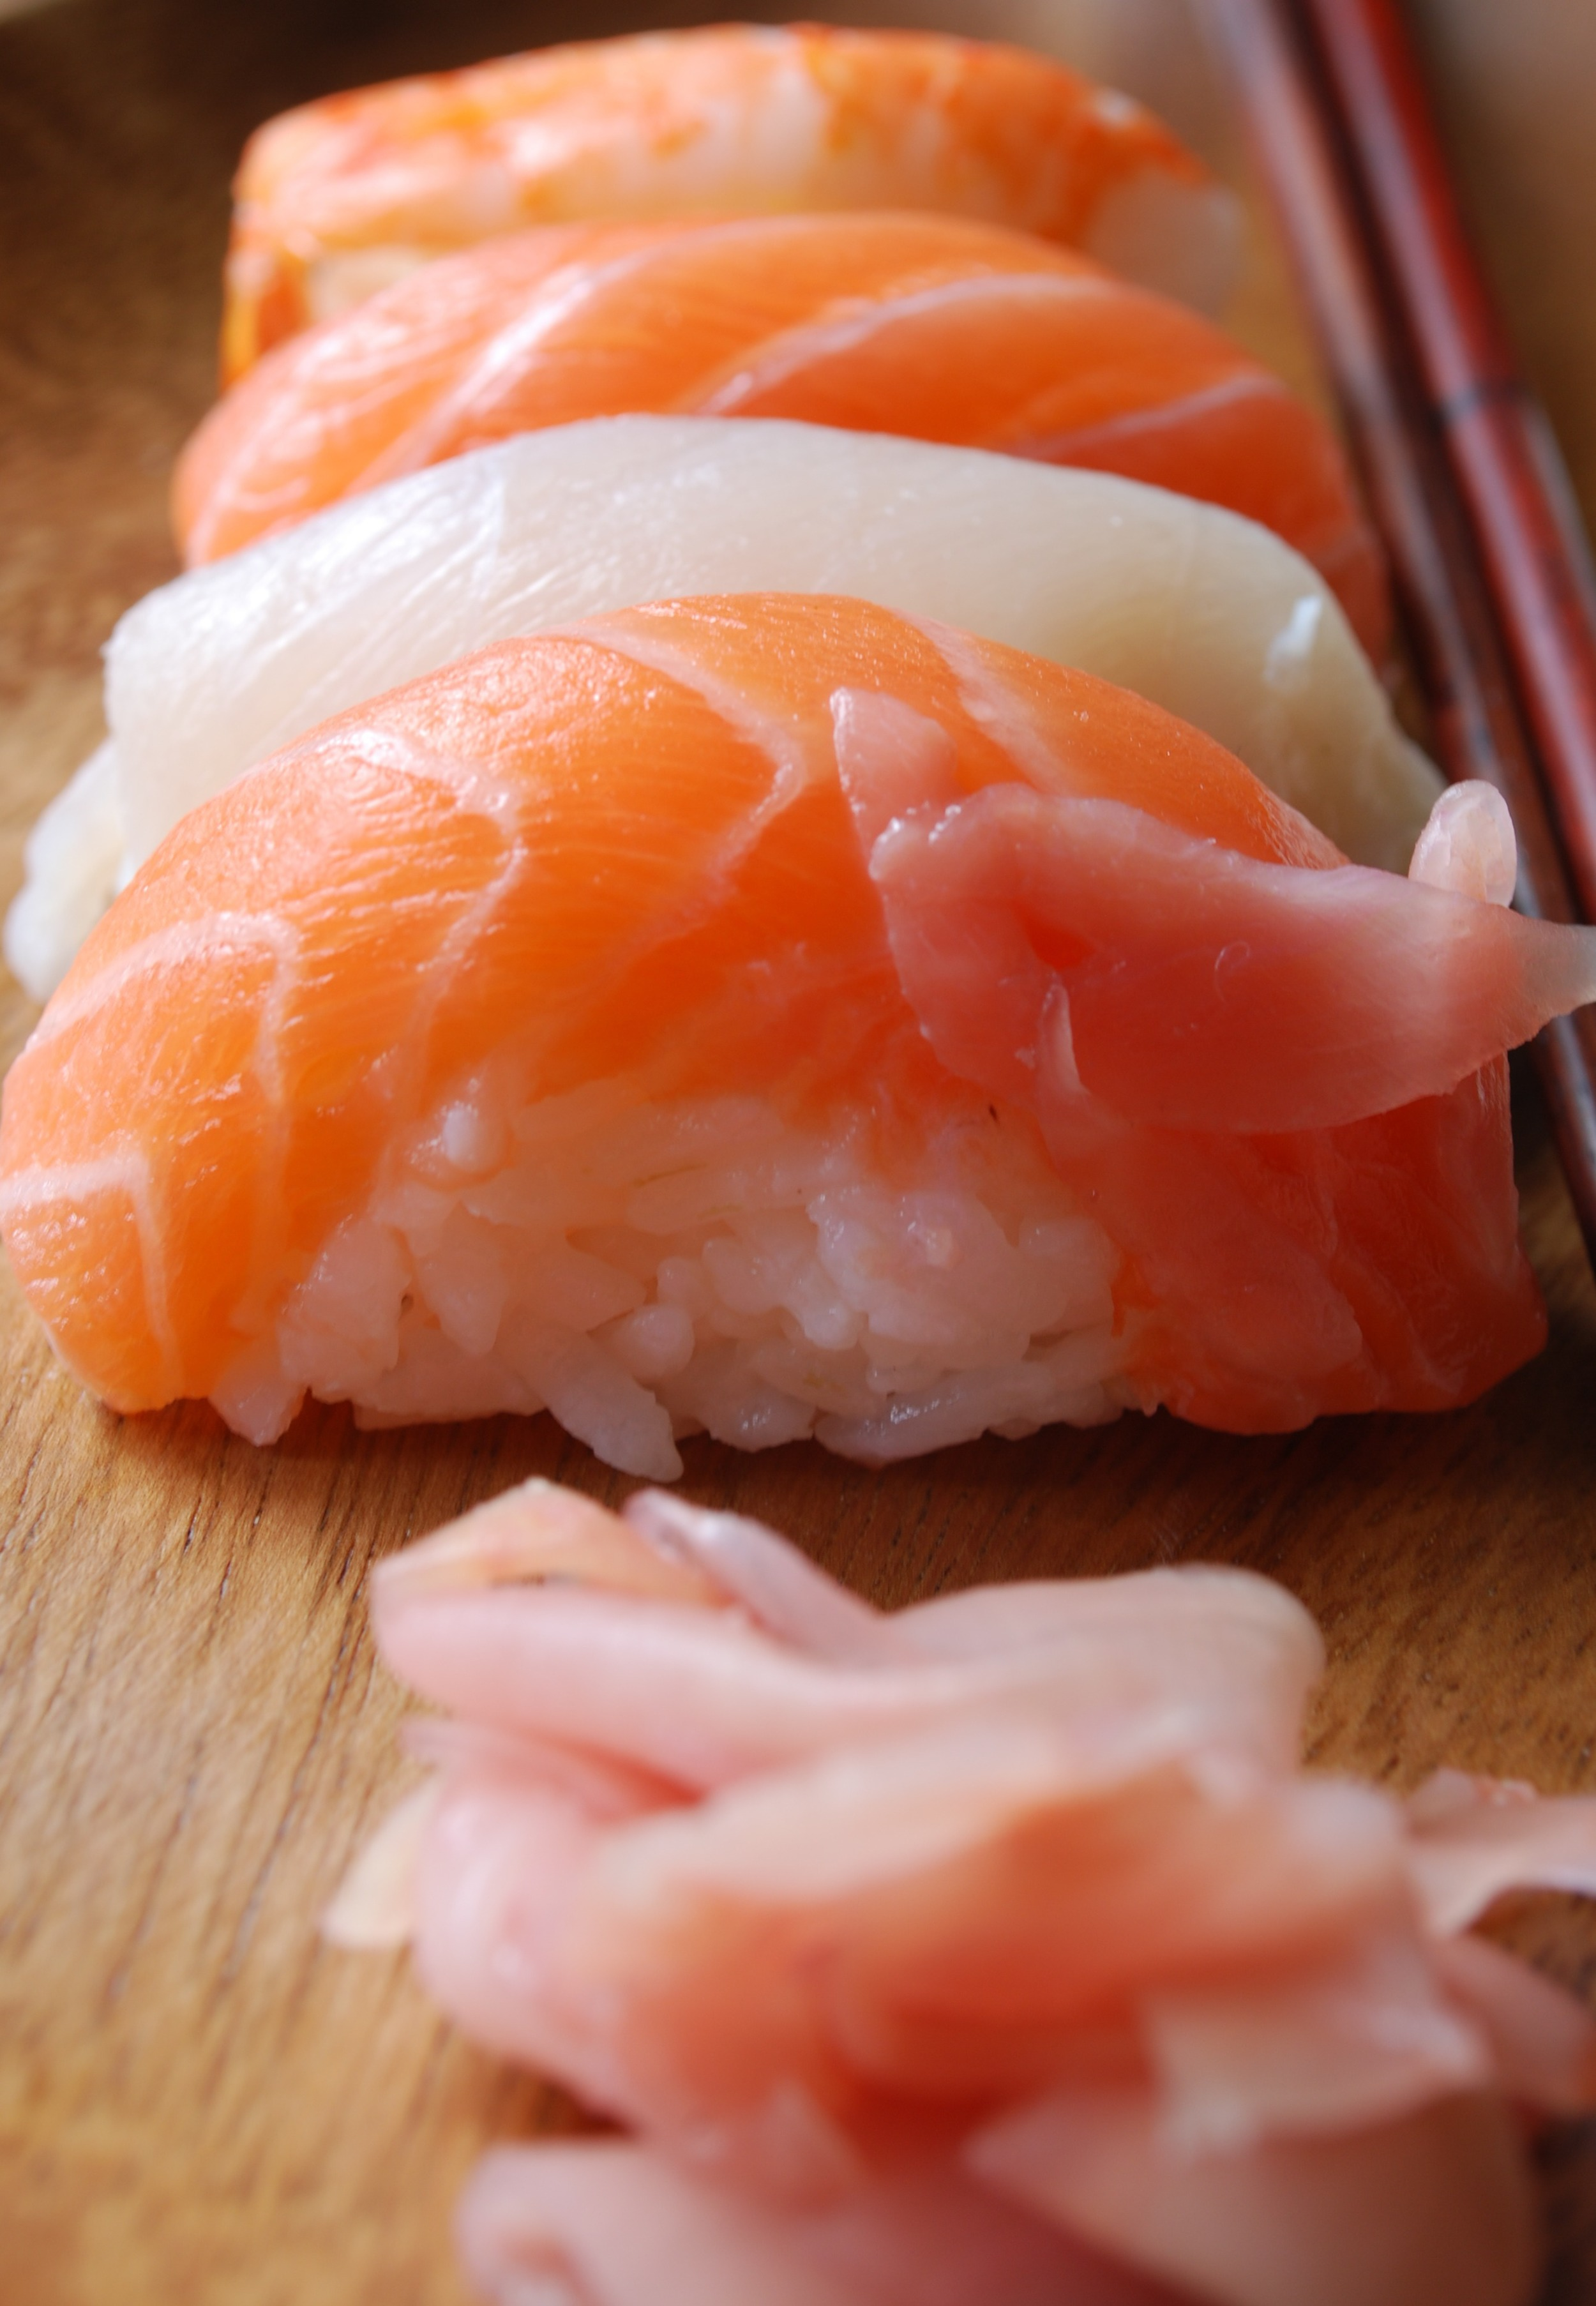 sushi-japonese-food-on-a-wooden-plate_7yfwGV.jpg